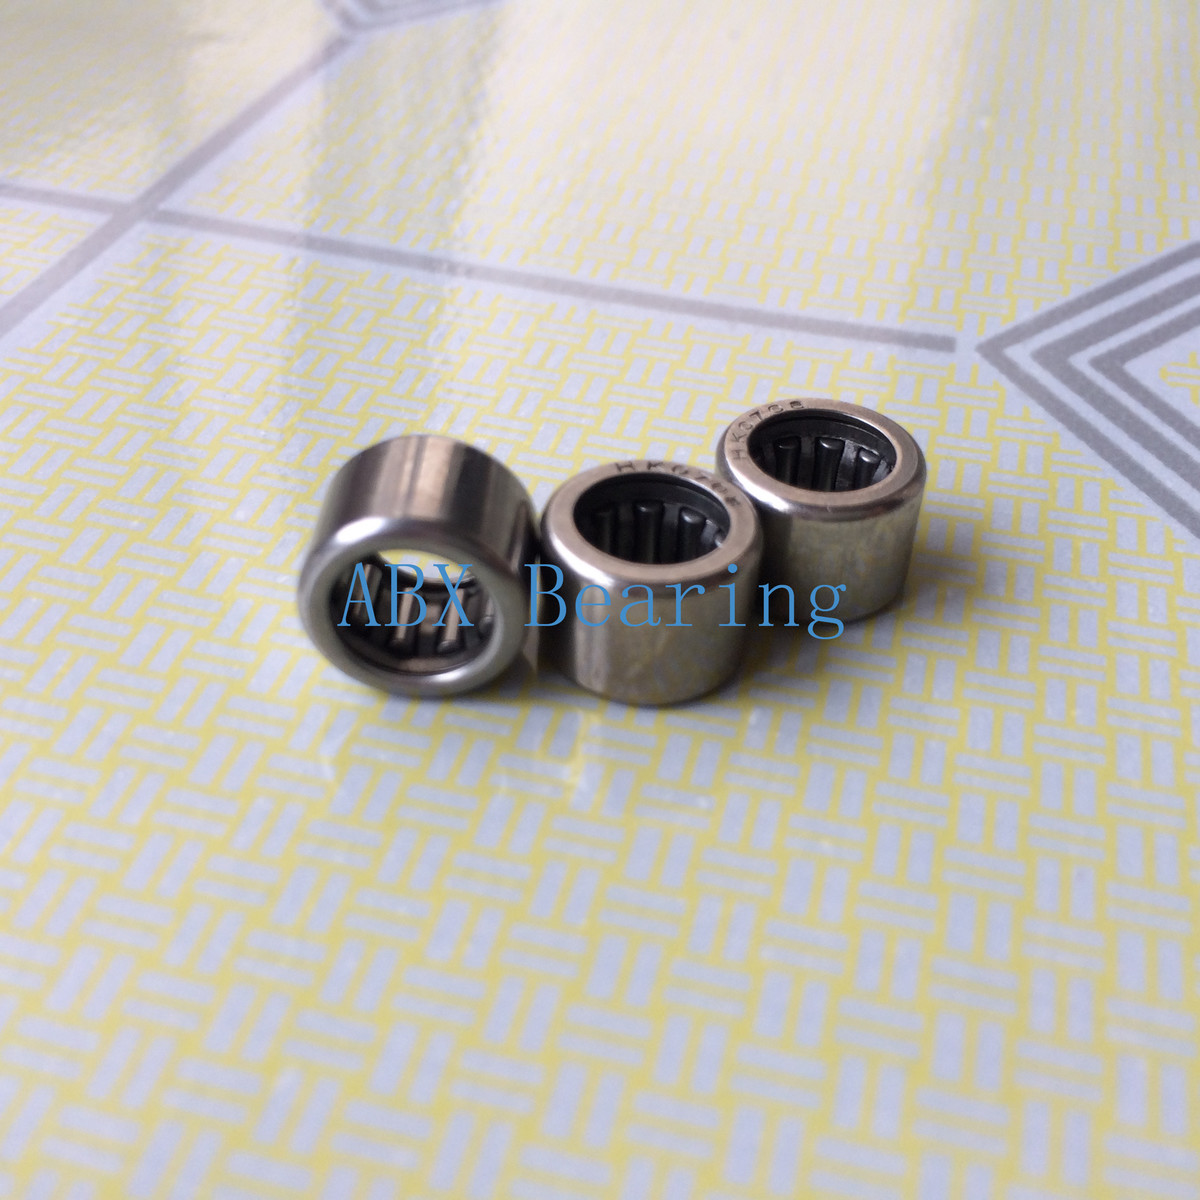 10pcs HK0709 47941/7 HK071109 Bearing BK0709 Needle Roller Bearing Draw Cup Bearing 7X11X9 MM 7* 11*9